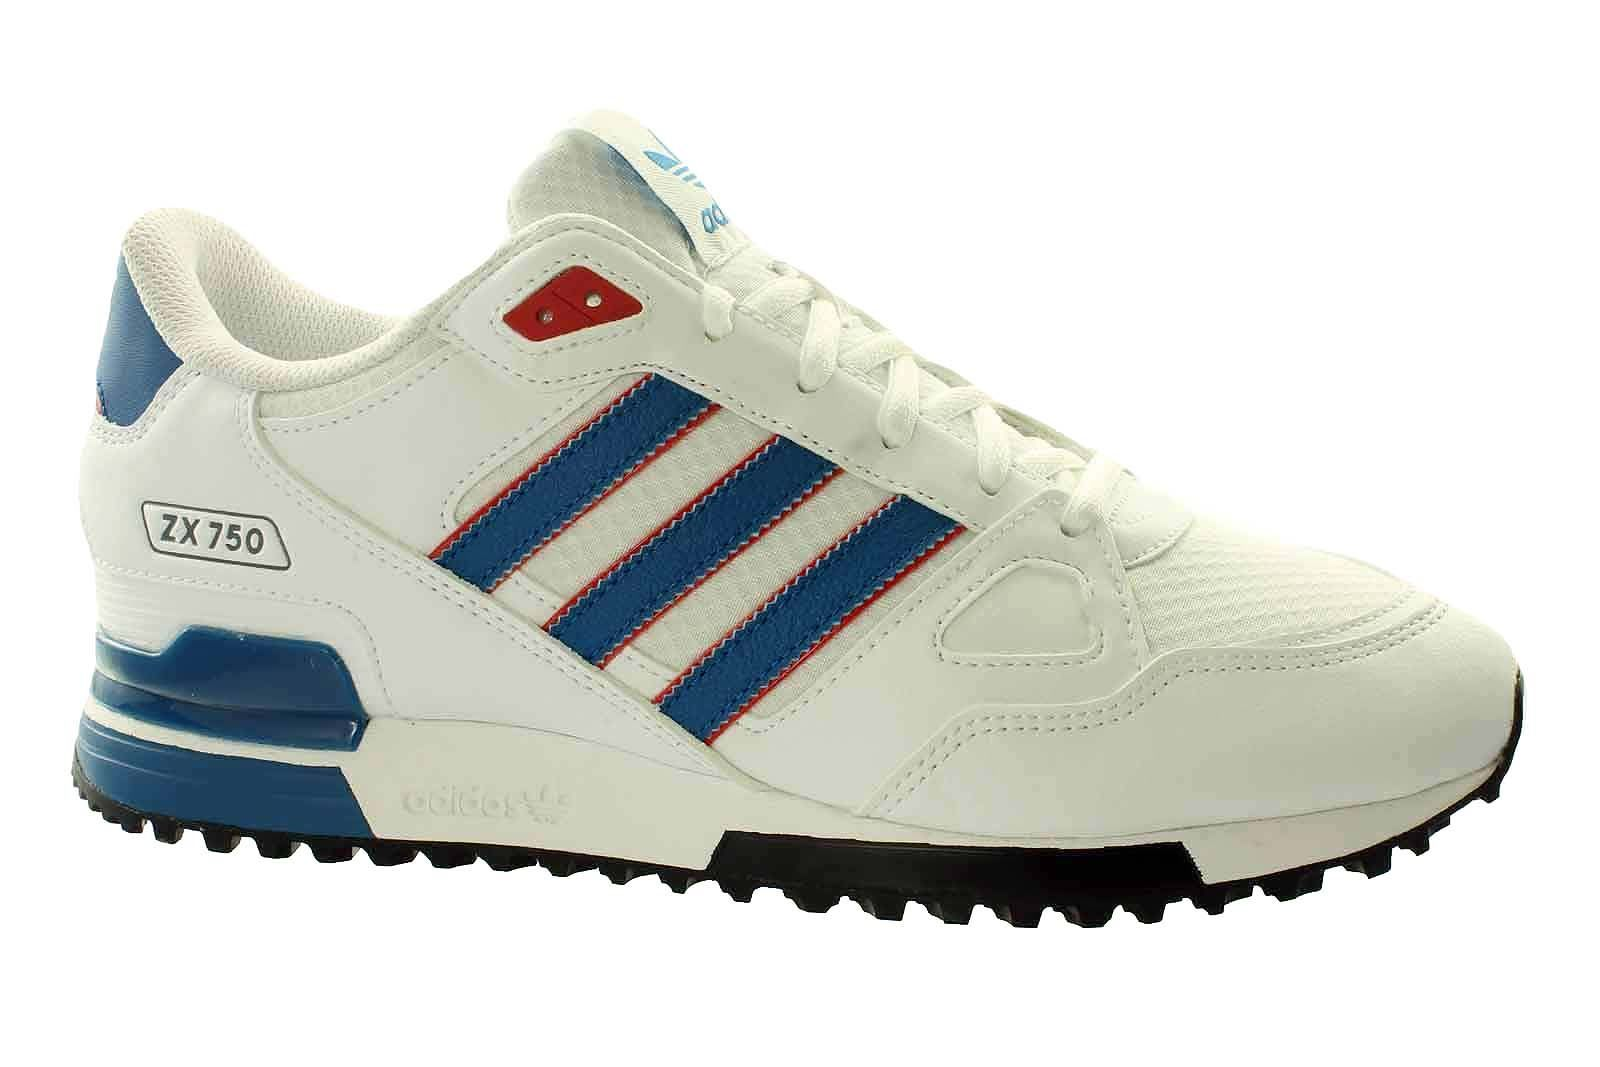 best website 6346e a48f7 adidas ZX 750 Mens Trainers~Originals~UK 3.5 - 11.5 Only